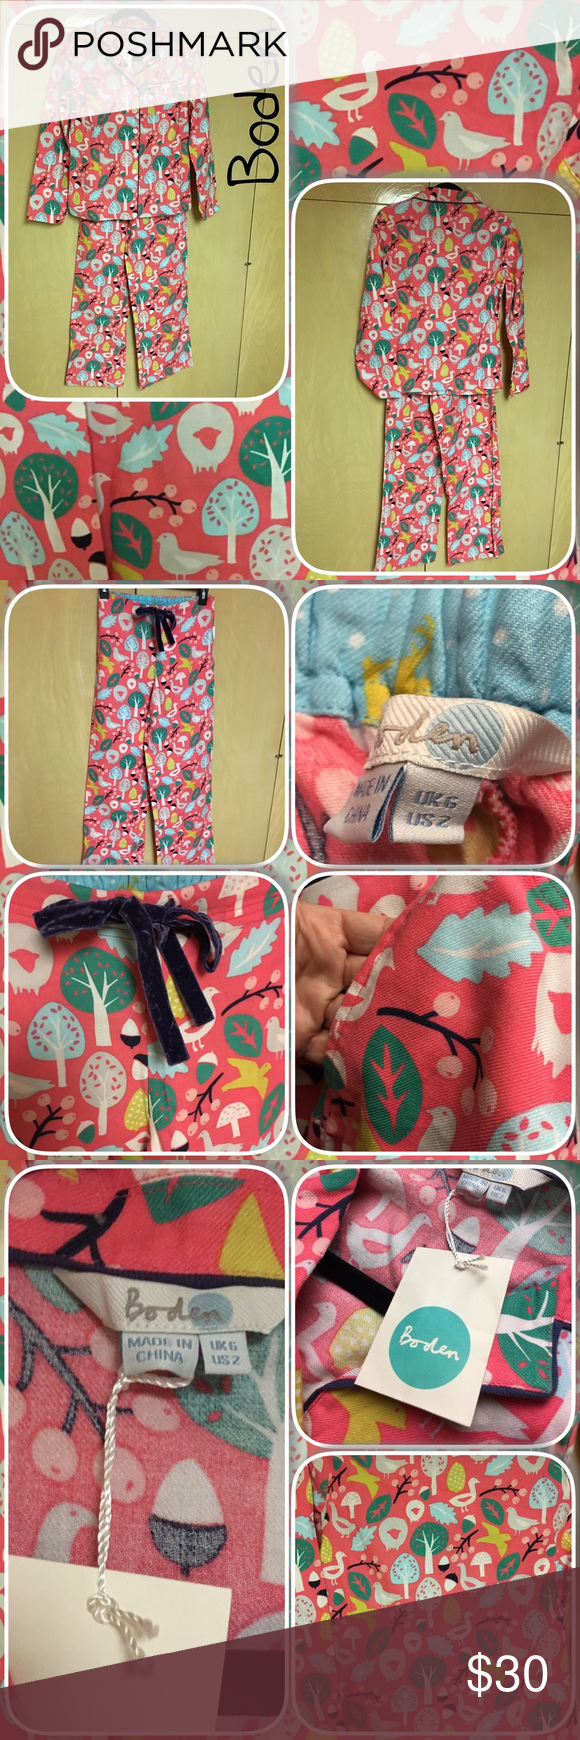 """NWT Boden Pink Cosy Print Pajamas Set US Sz 2 Details: Size 2 US / Size 6 UK This matching set isn't just for bedtime – tuck a tee into the elasticated waist of the trousers for the perfect daytime lounging outfit. 100% cotton Top length finishes at low hip Machine washable Full length sleeves Button fastening at front Pocket at left chest on top Side pockets on bottoms Inside leg length 30 1/2""""  Brand new with original hang tags! Boden Intimates & Sleepwear Pajamas"""